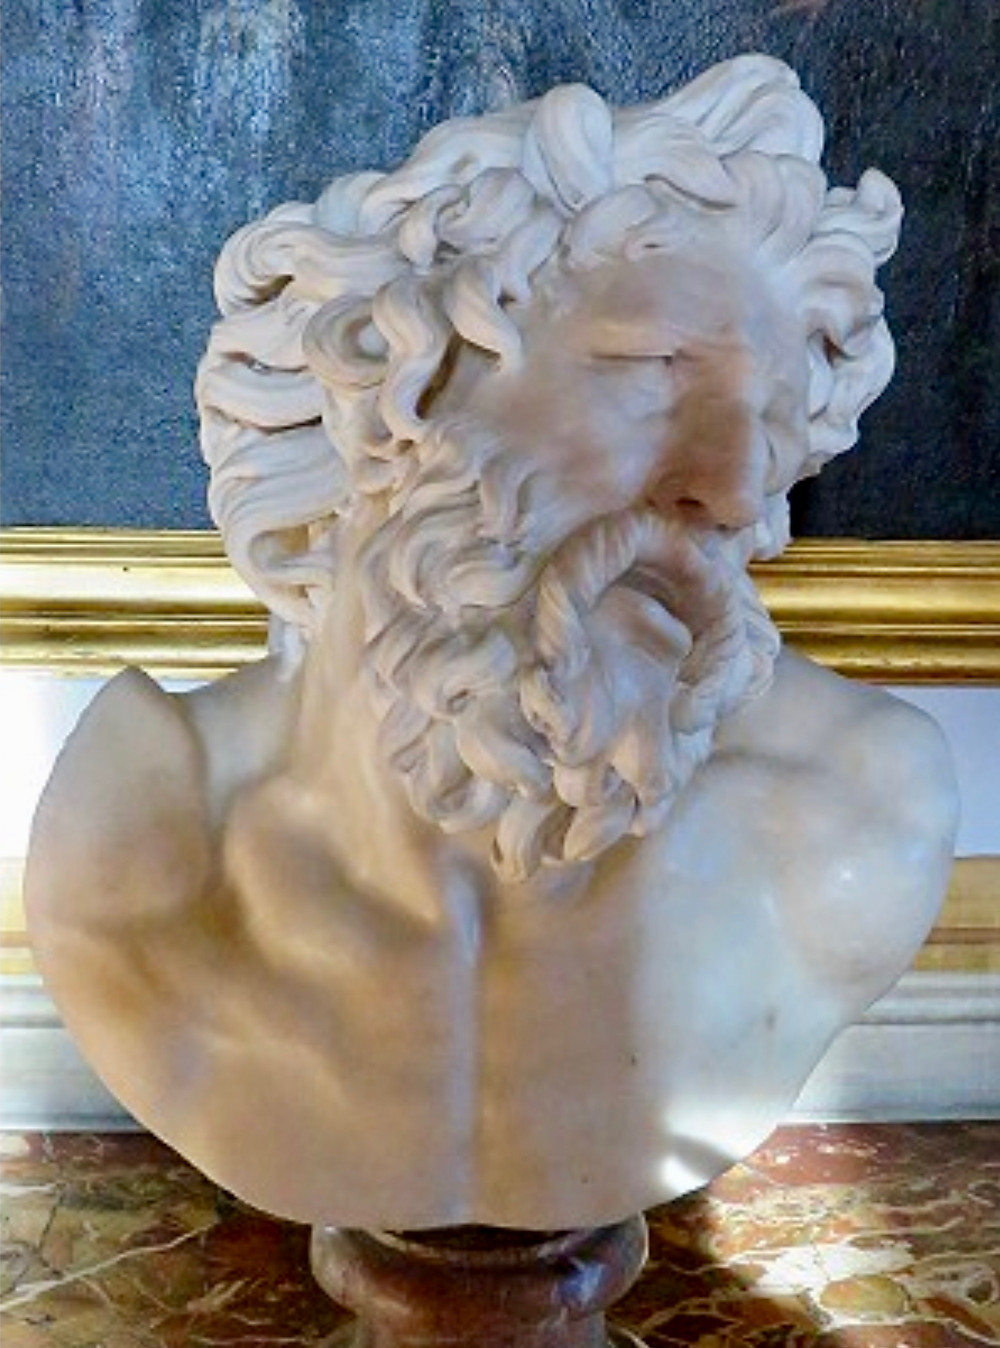 17th century marble bust after the Vatican's Laocoon, possibly by Bernini